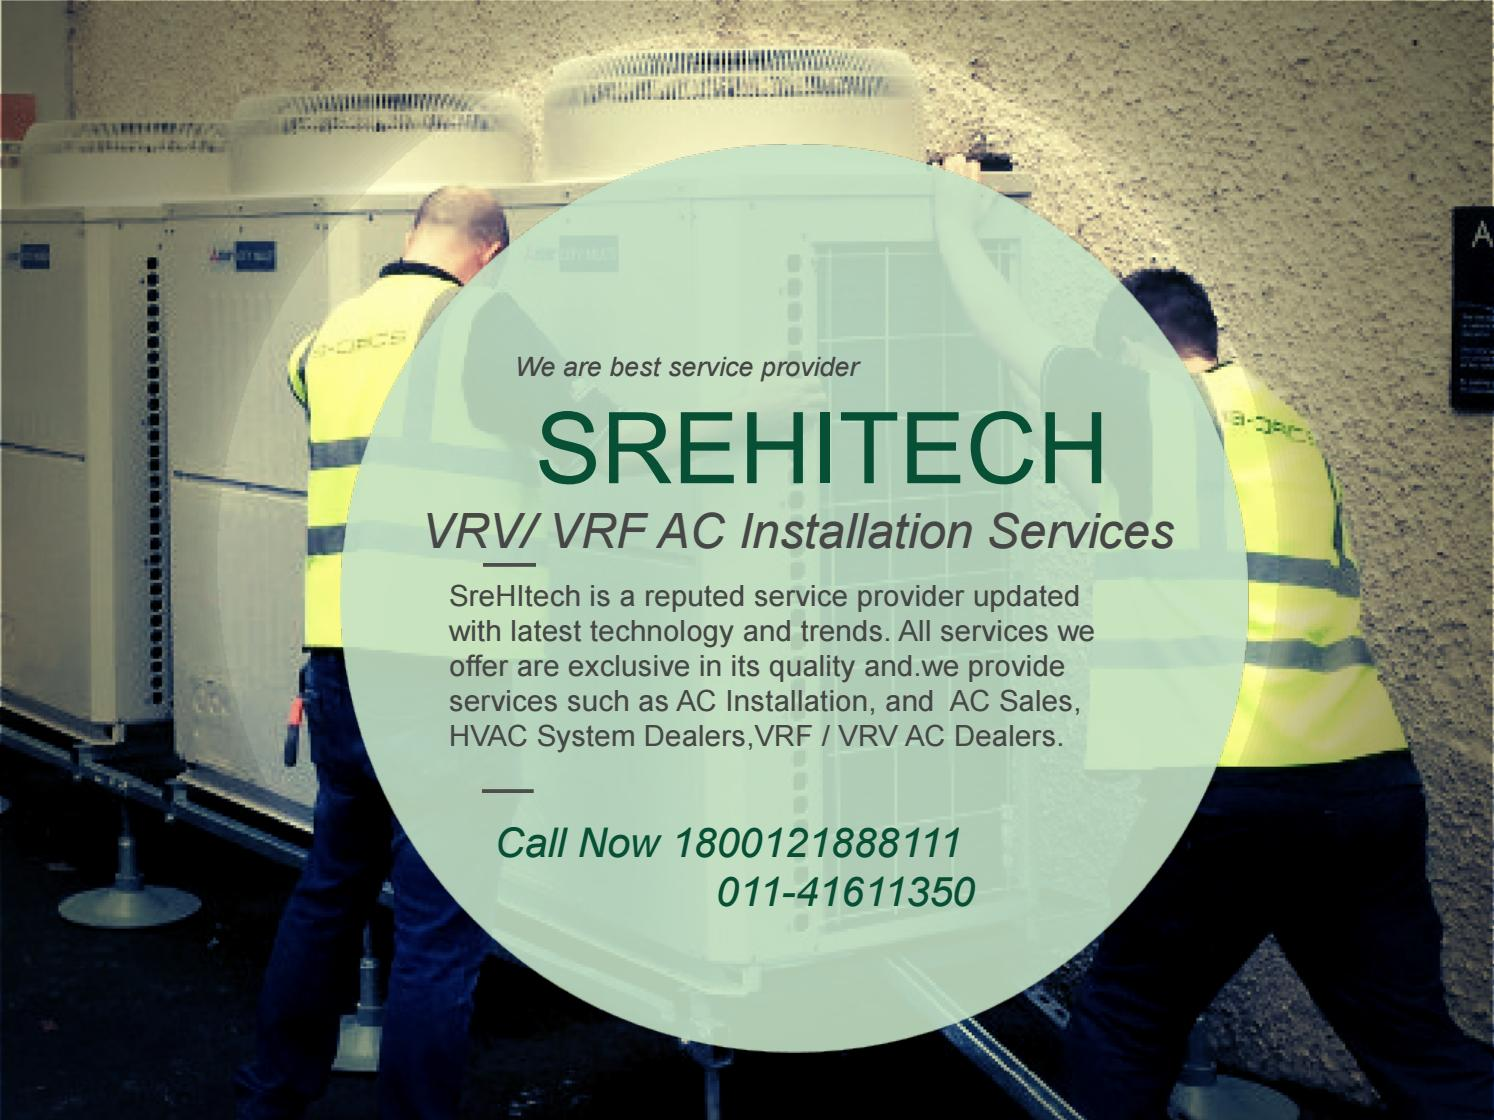 VRV/VRF System Service in India by srehitechvrf - issuu